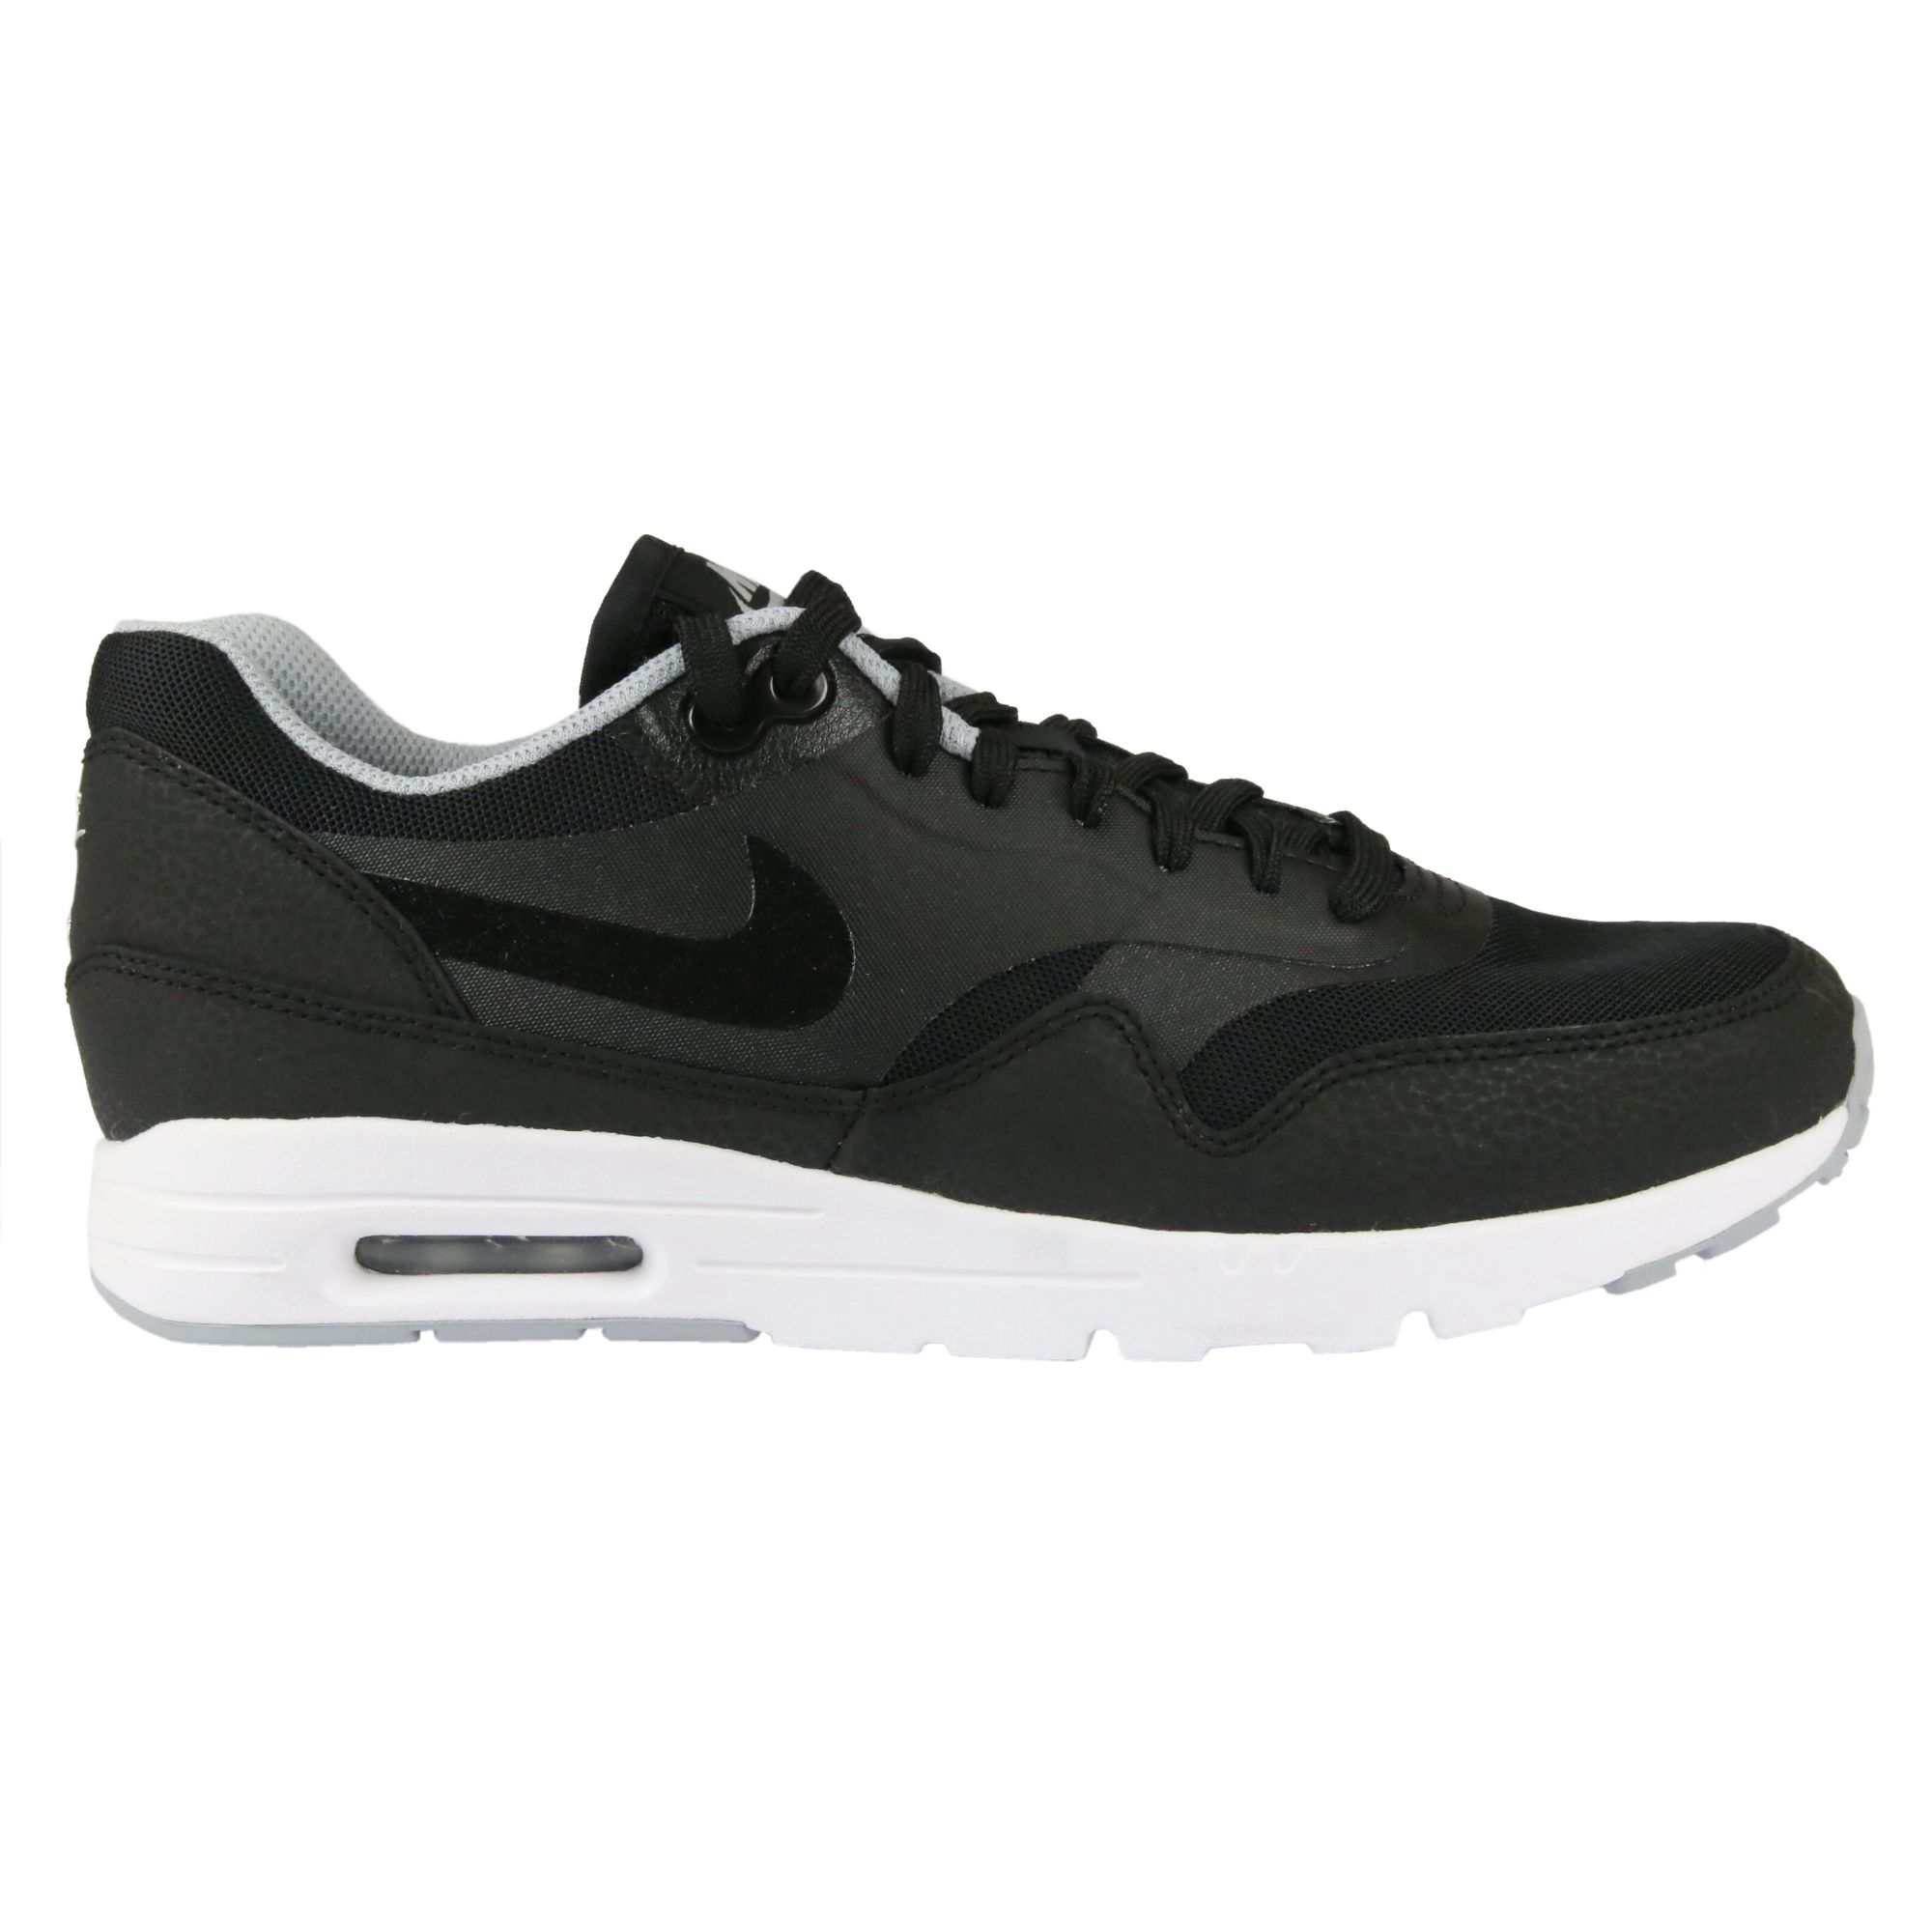 nike air max 1 ultra essentials schuhe turnschuhe sneaker. Black Bedroom Furniture Sets. Home Design Ideas